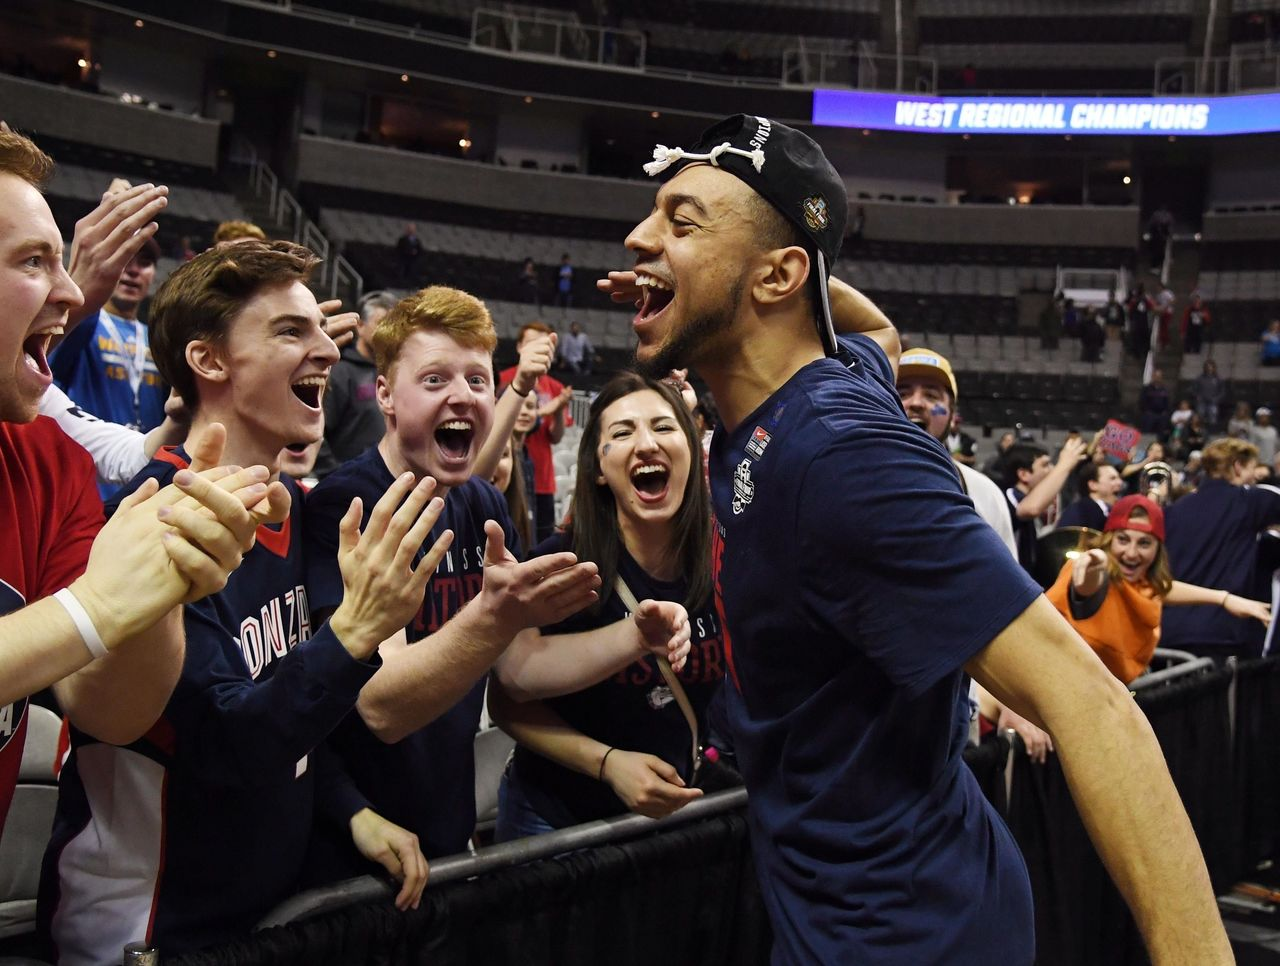 Cropped 2017 03 26t004917z 400576084 nocid rtrmadp 3 ncaa basketball ncaa tournament west regional gonzaga vs xavier